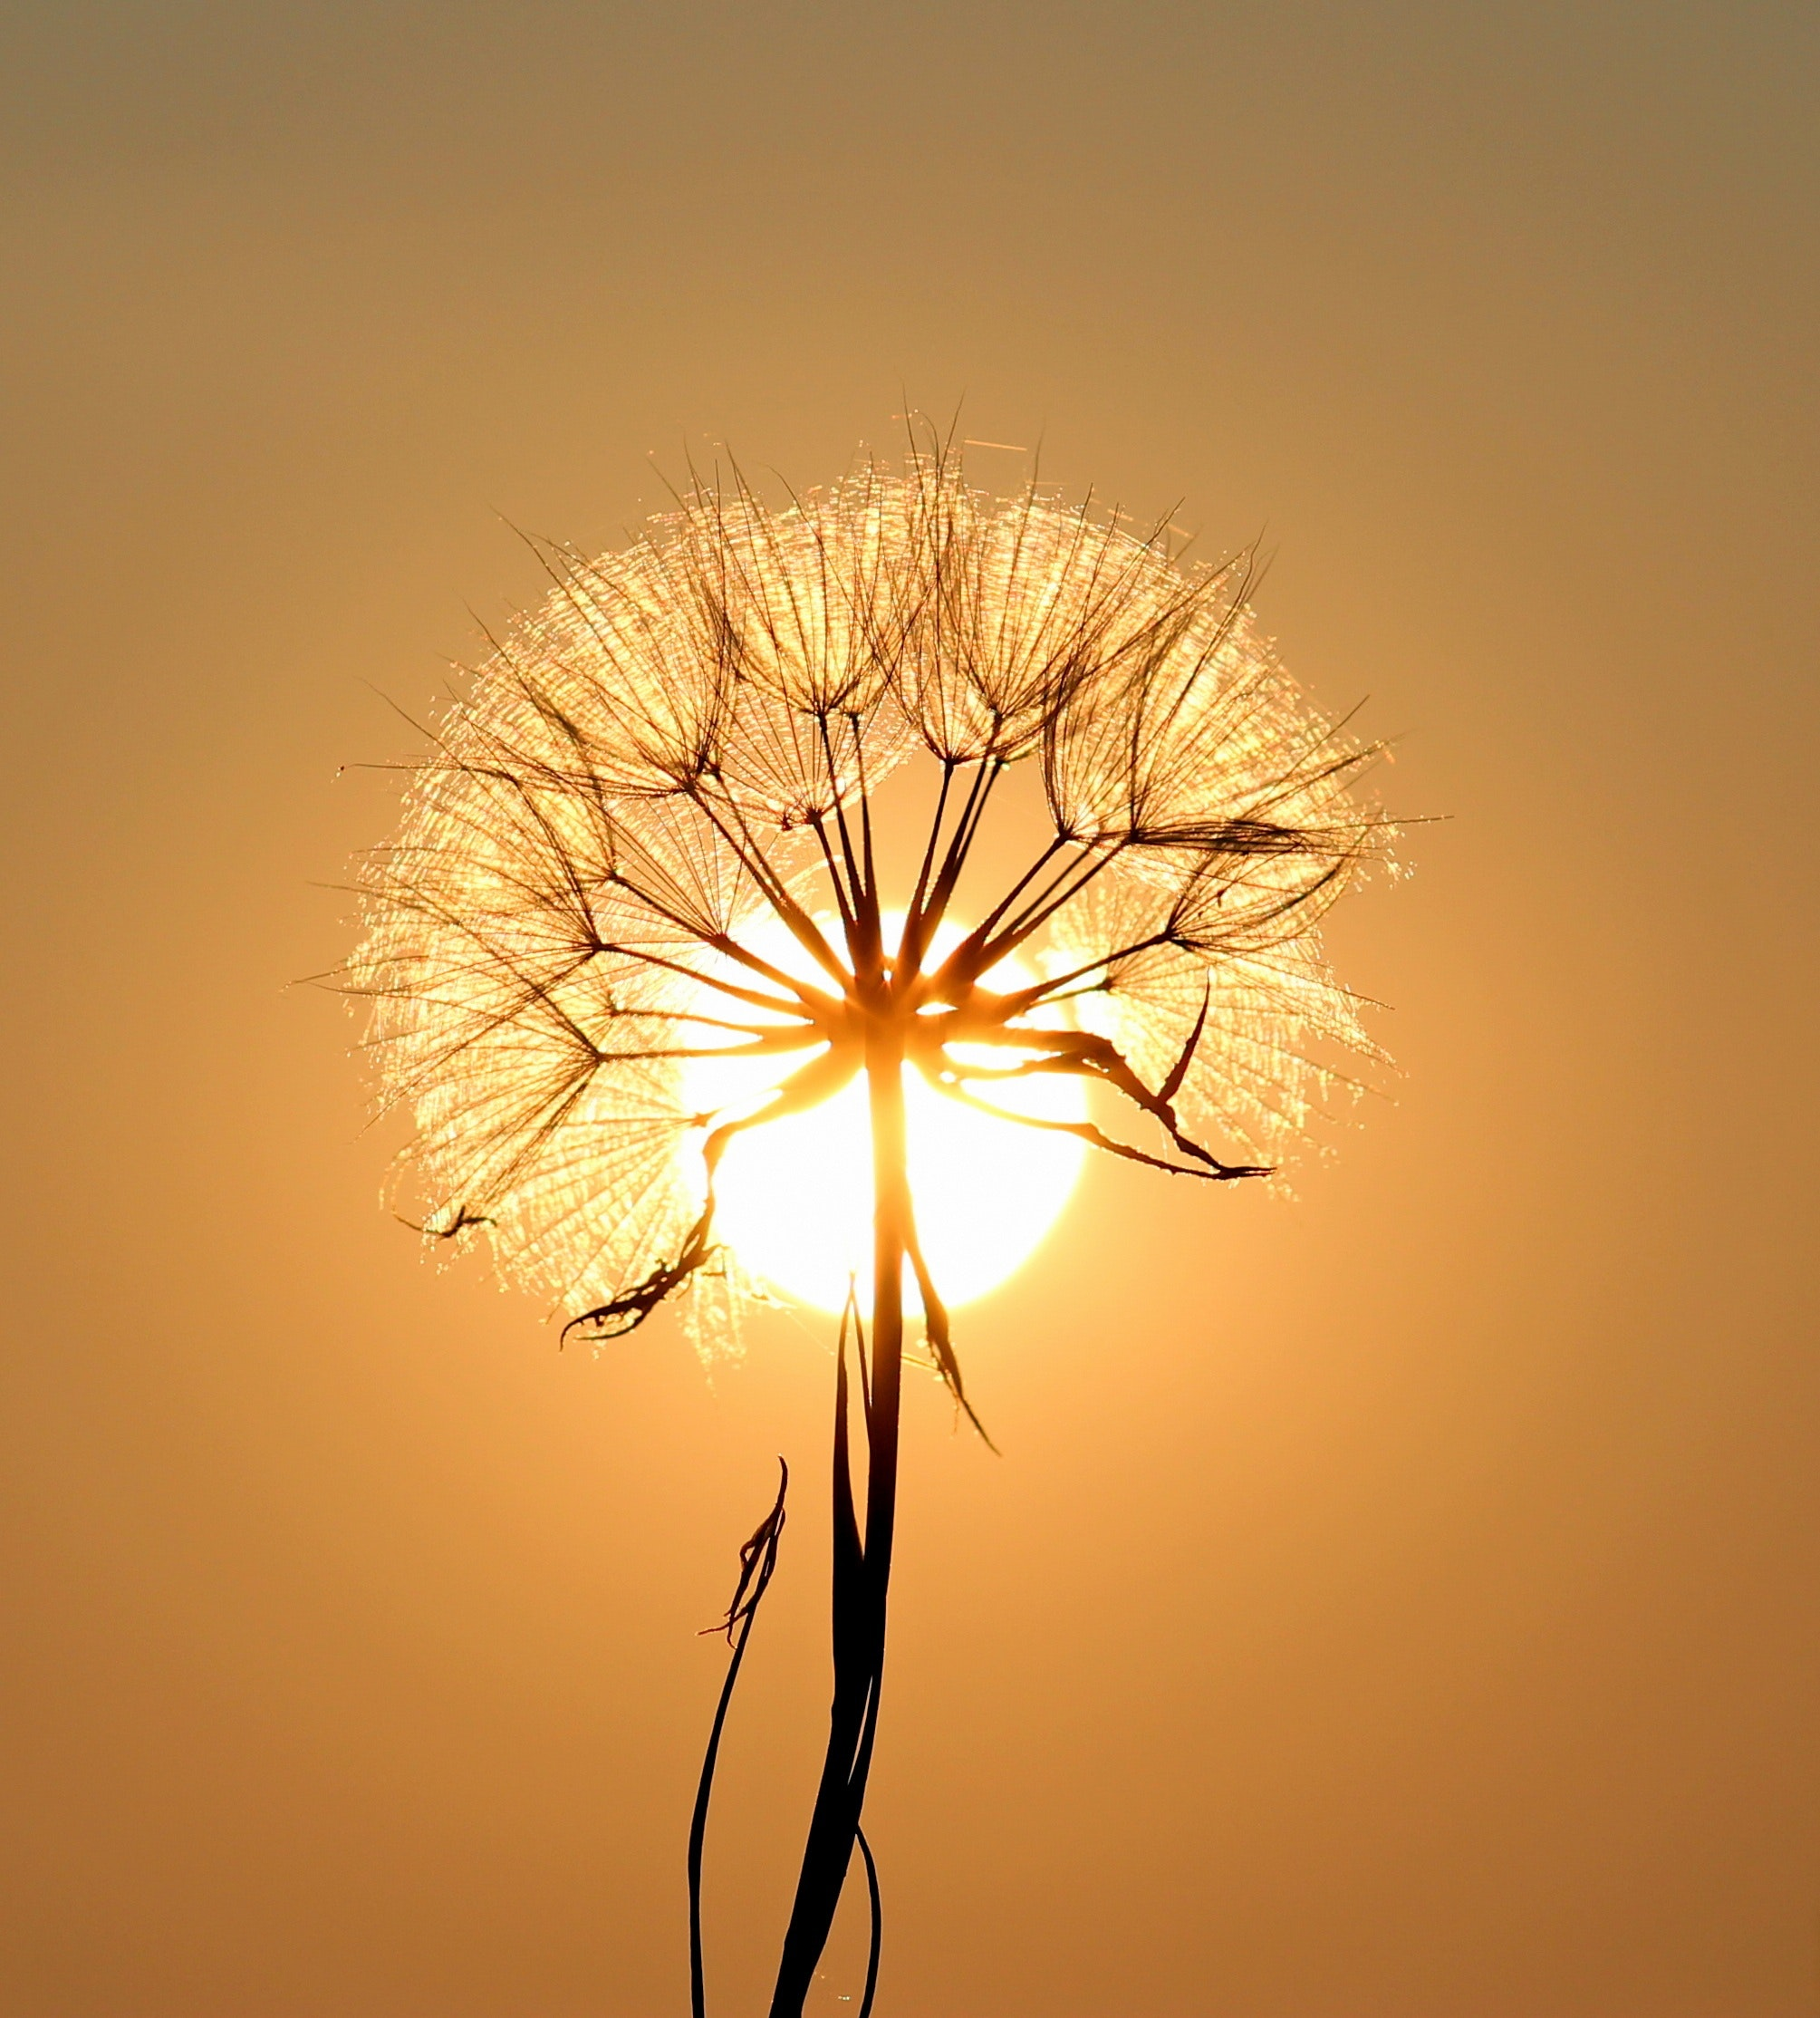 Free photo white dandelion flower plant silhouette sunset white dandelion flower photo mightylinksfo